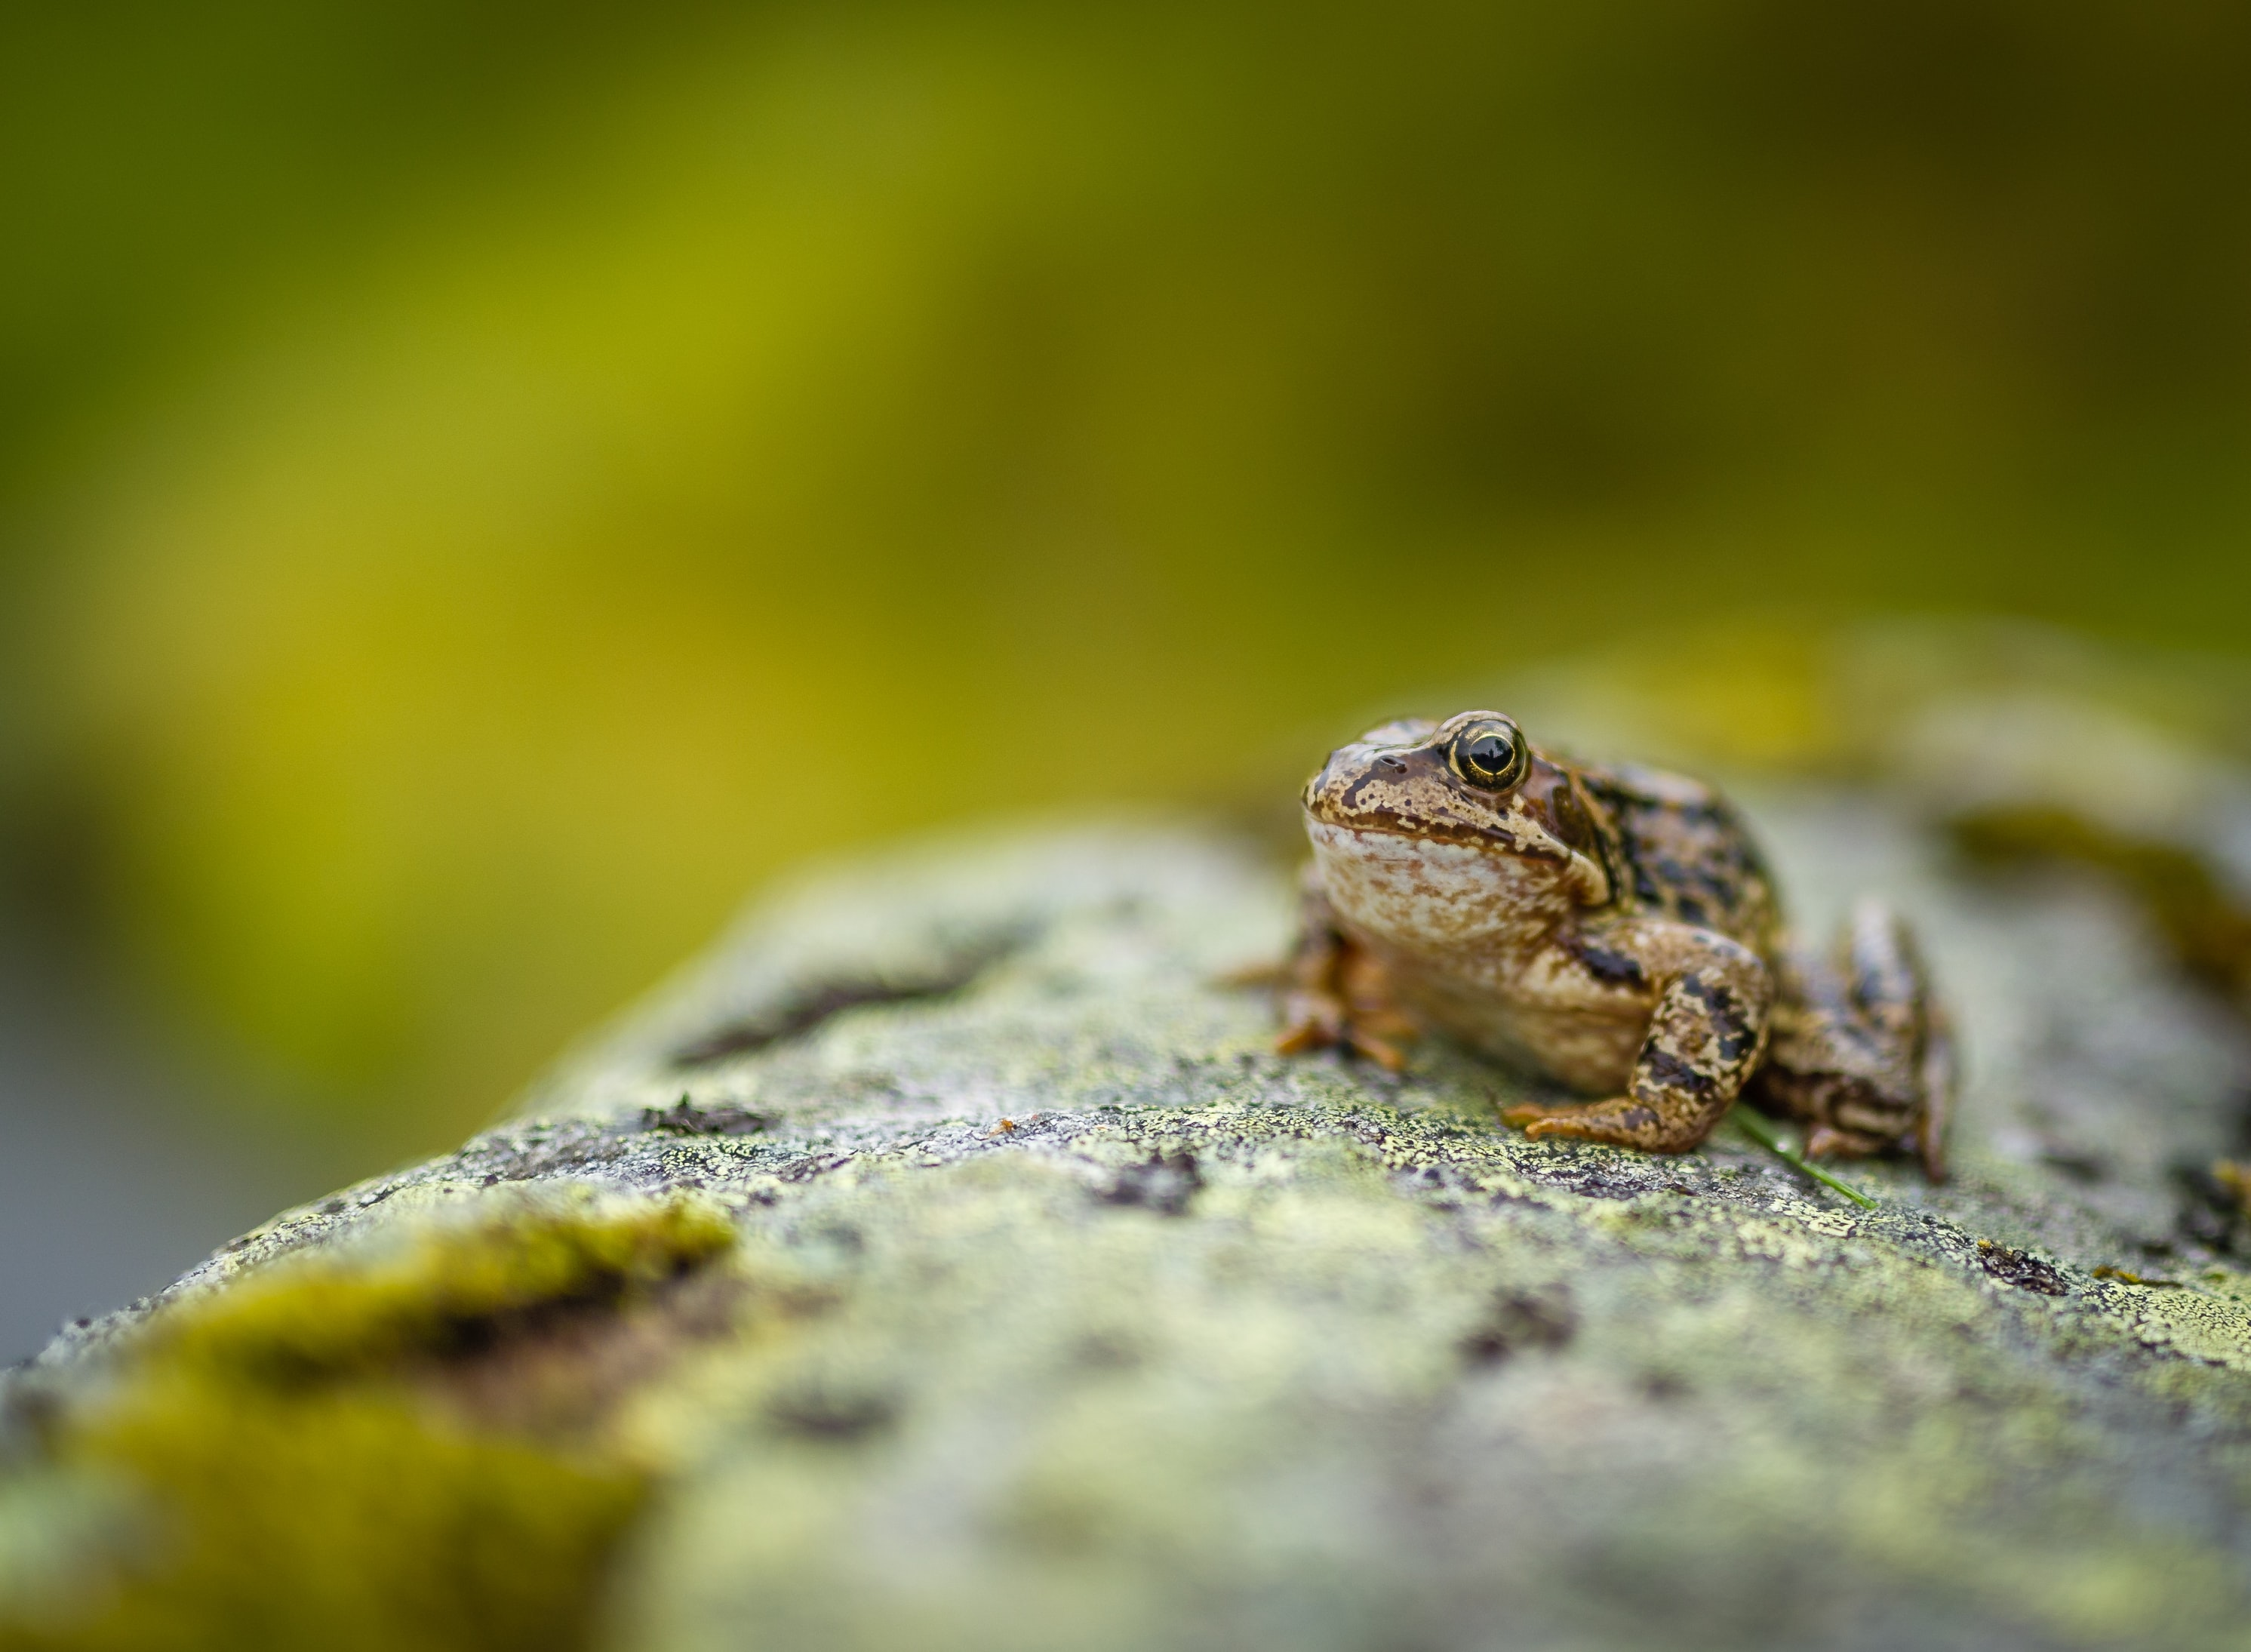 selective focus photo of toad on rock